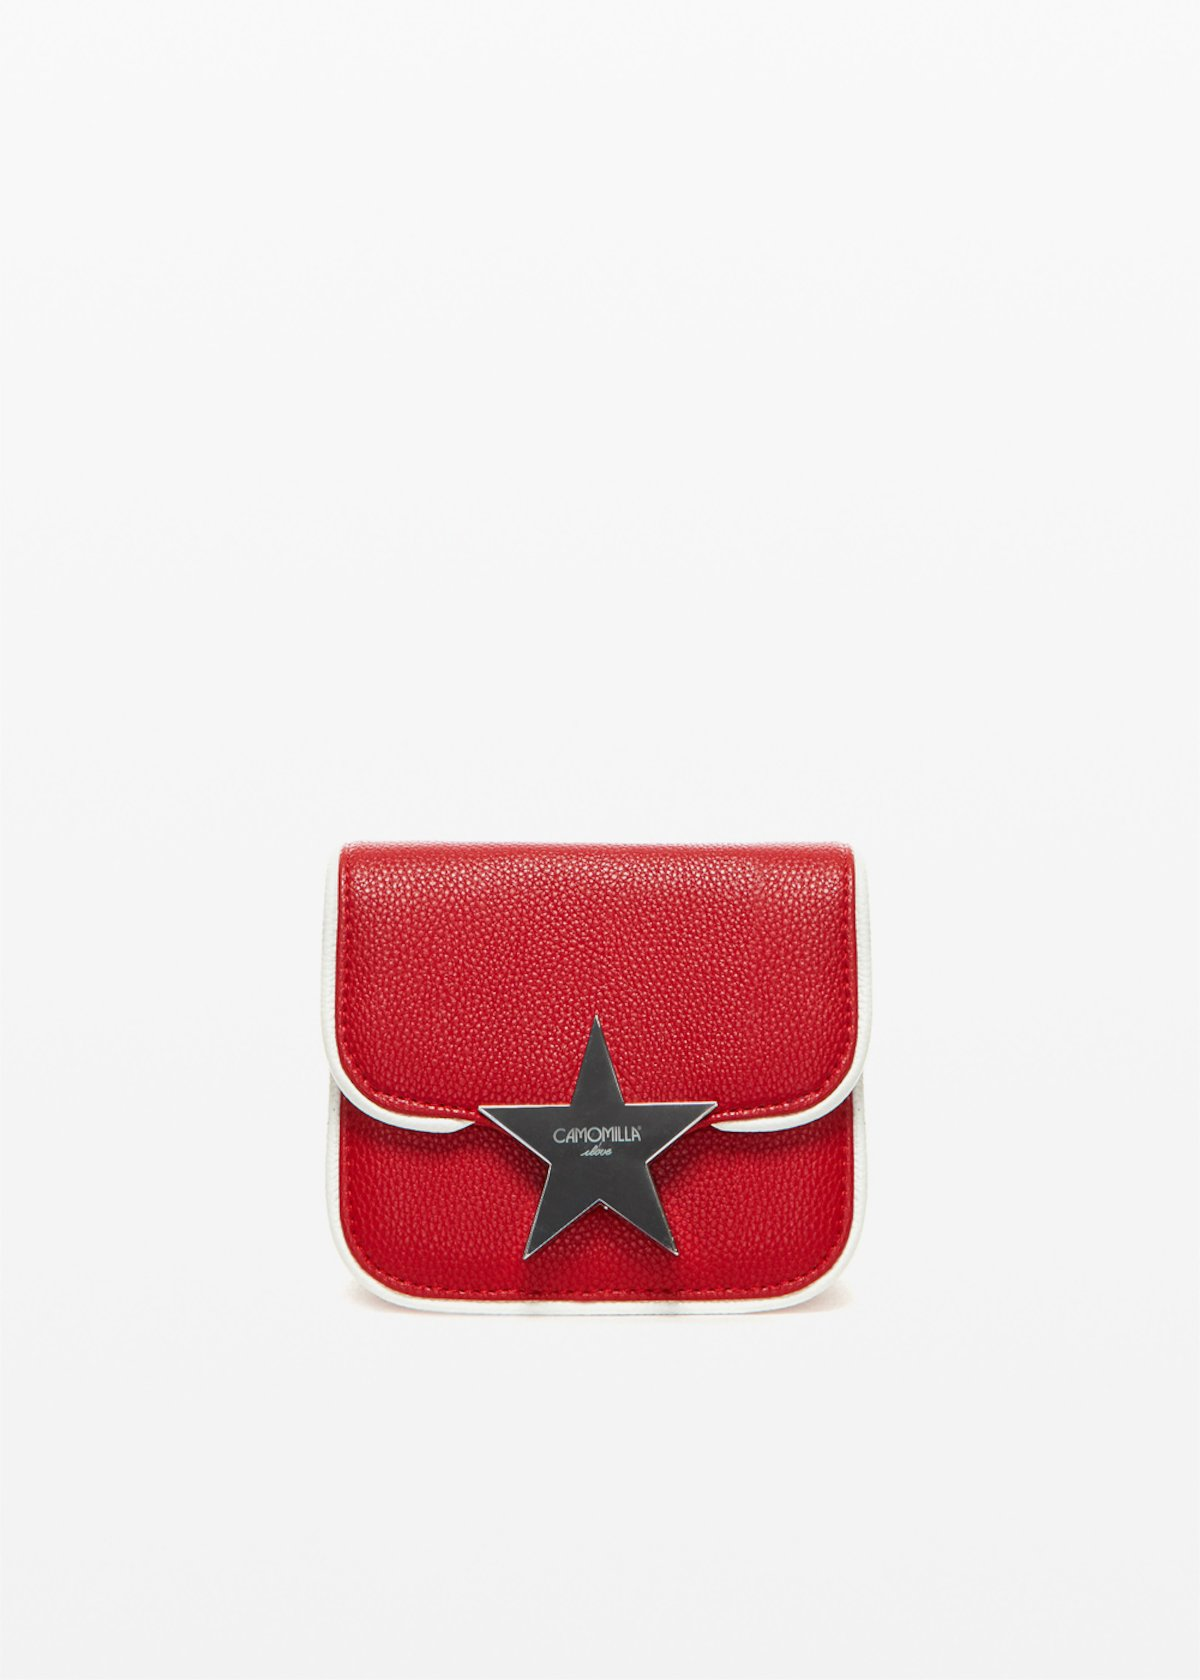 Burpies clutch bag with star clasp